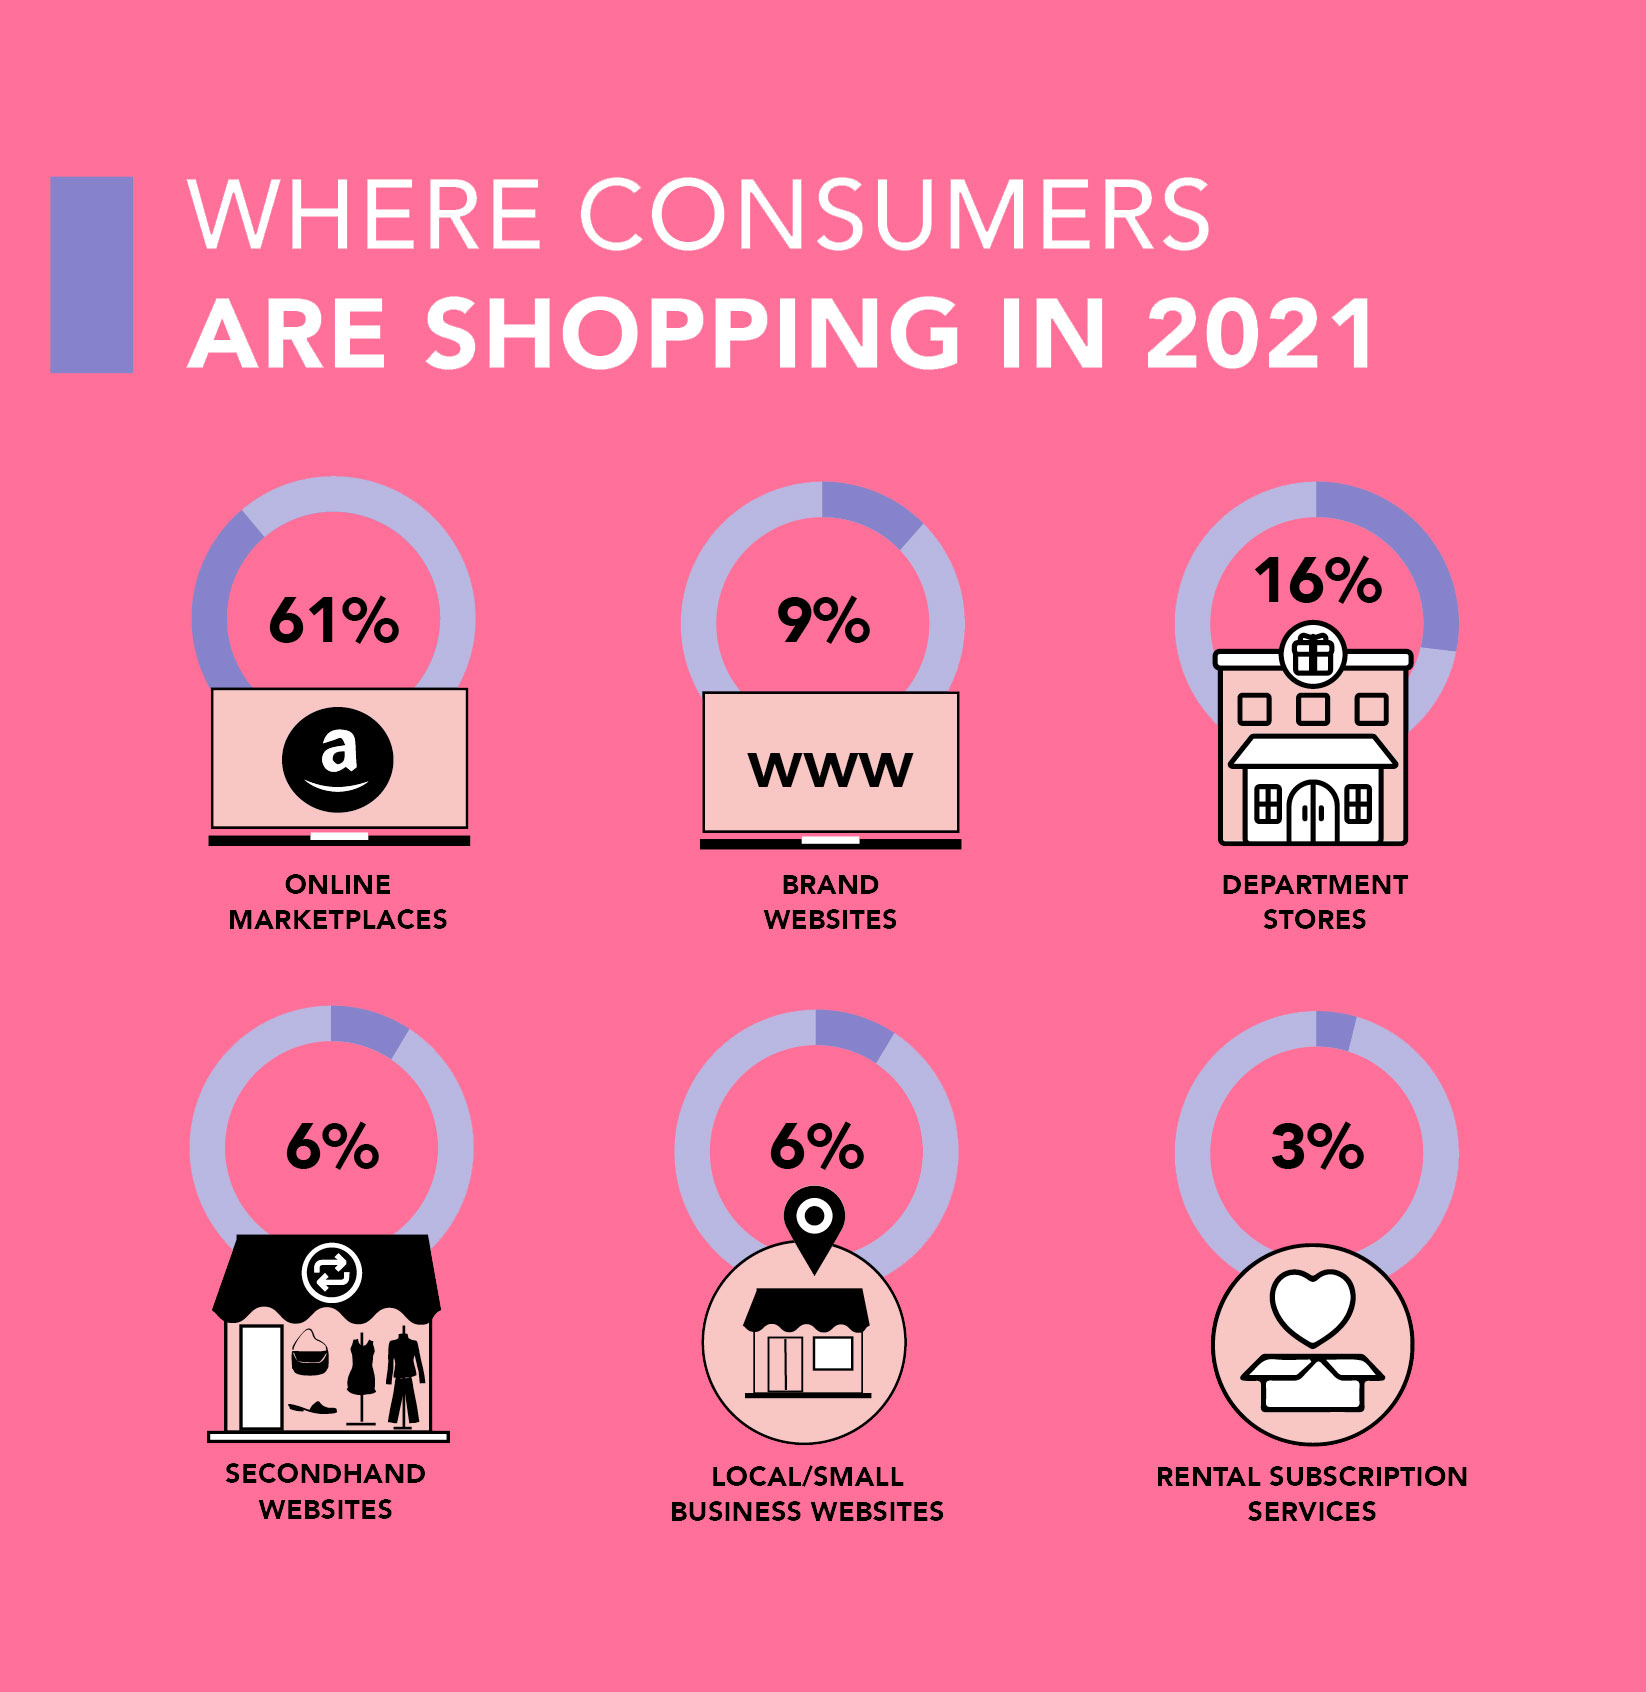 Where consumers are shopping infographic image